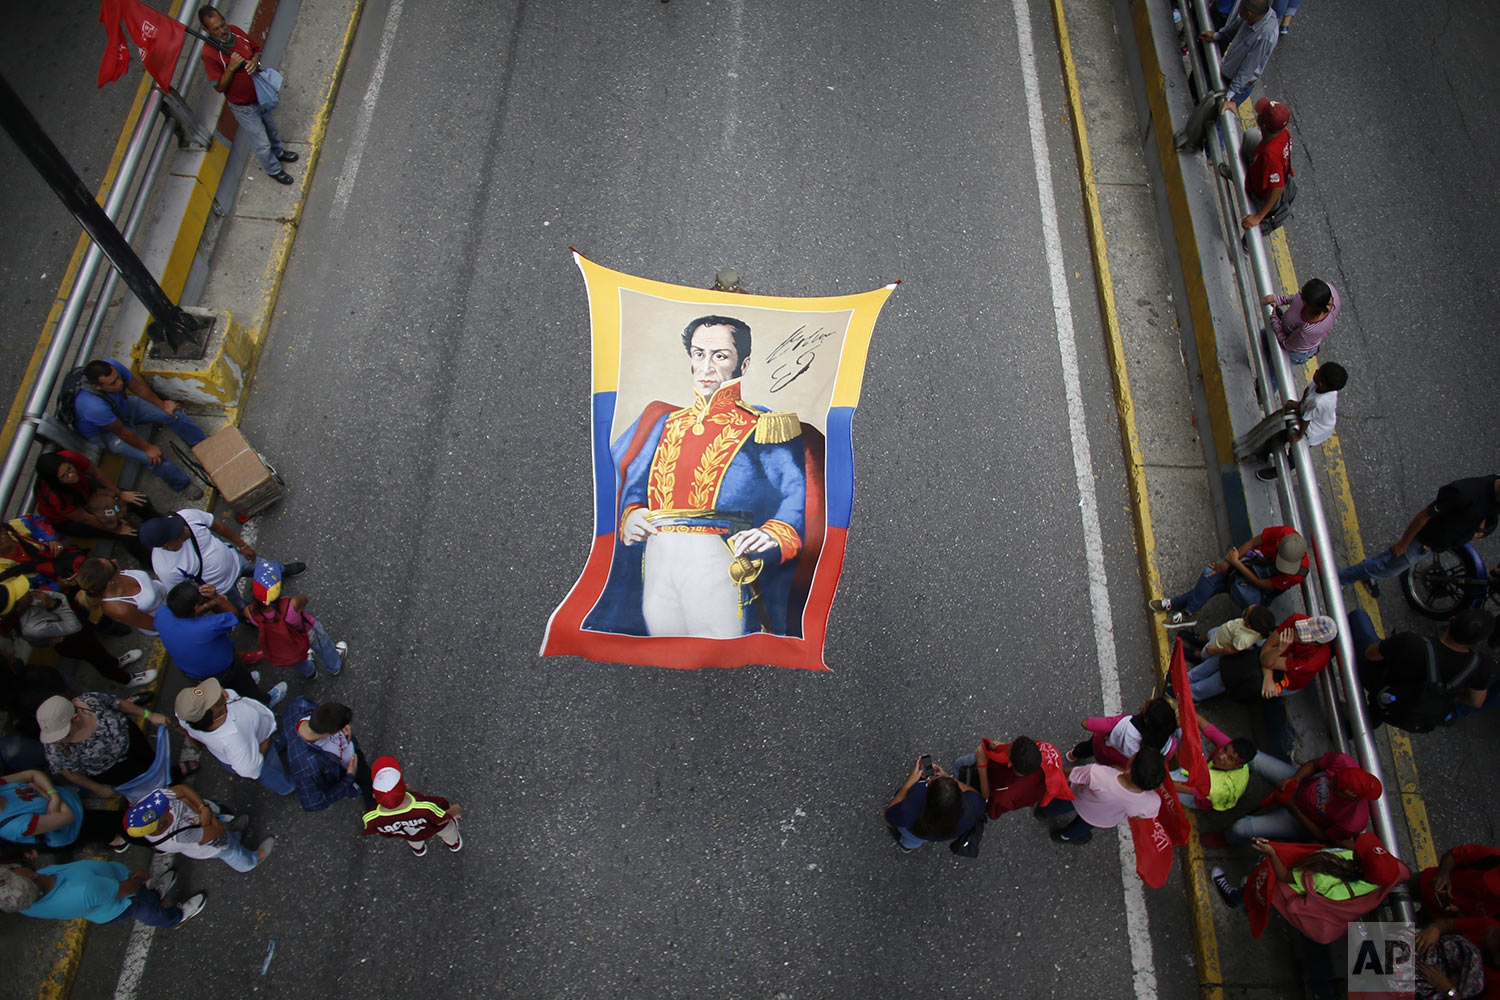 Supporters of President Nicolas Maduro holds a banner of Venezuela's independence hero Simon Bolivar during a rally celebrating 11 years of the Socialist Party of Venezuela' youth in Caracas, Venezuela, Thursday, Sept. 12, 2019. (AP Photo/Ariana Cubillos)